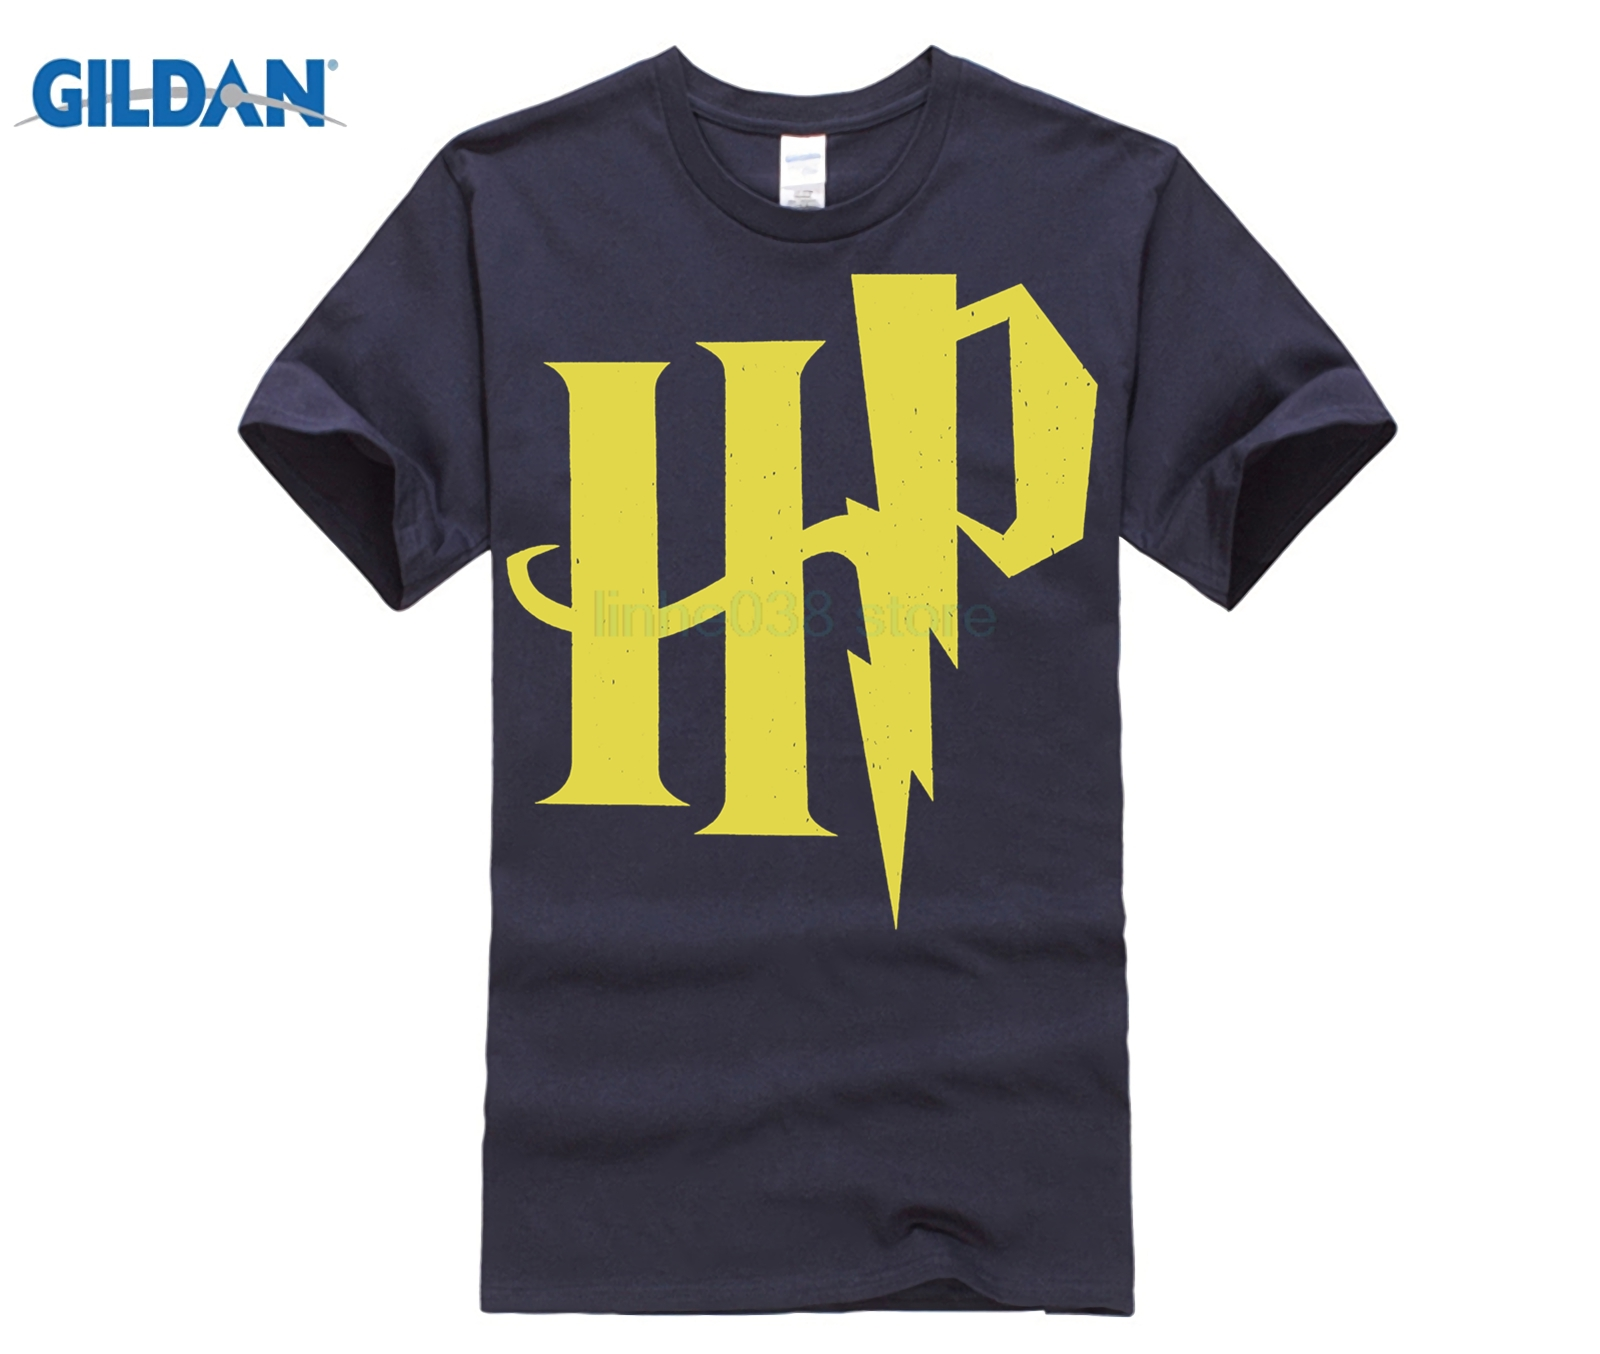 Fashionable Menswear harry tee harry never give up potter T Shirt 15 potter top in T Shirts from Men 39 s Clothing